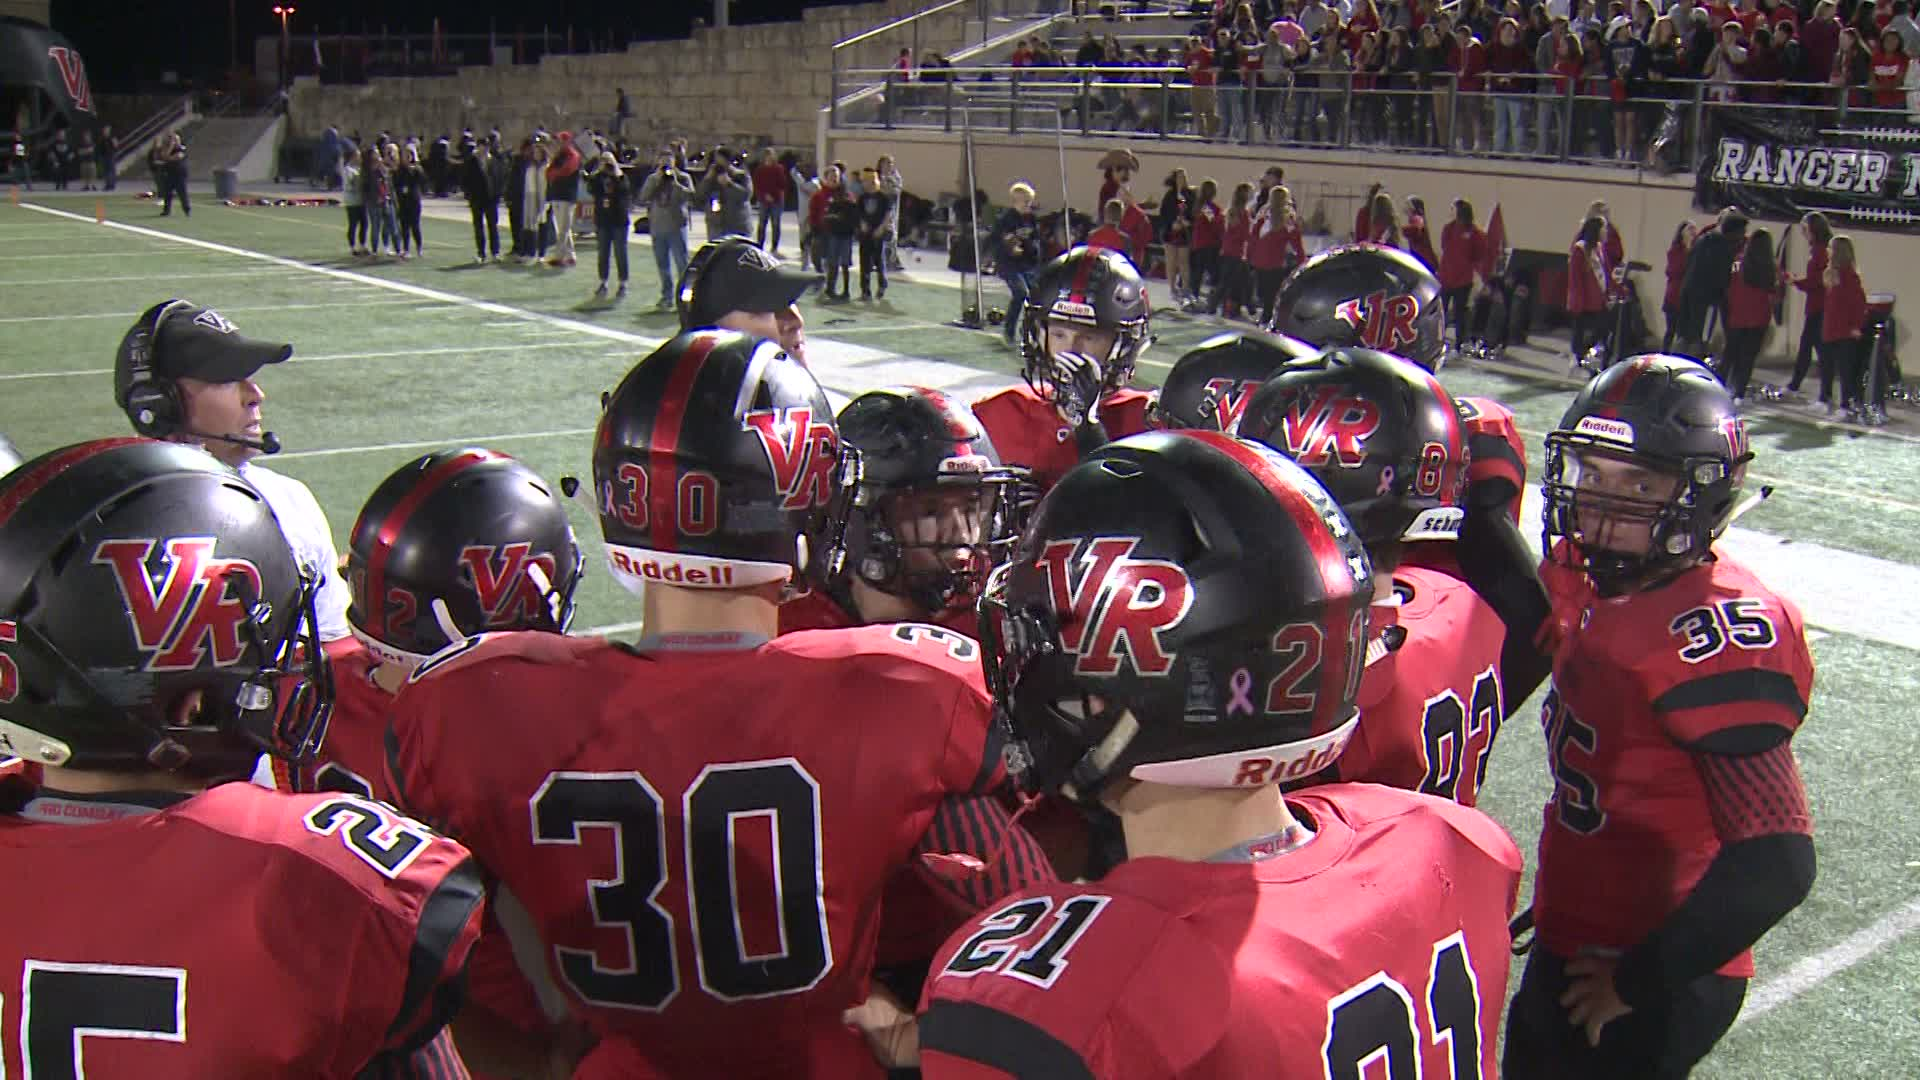 Westlake vs. Vista Ridge football (KXAN Photo)_579391